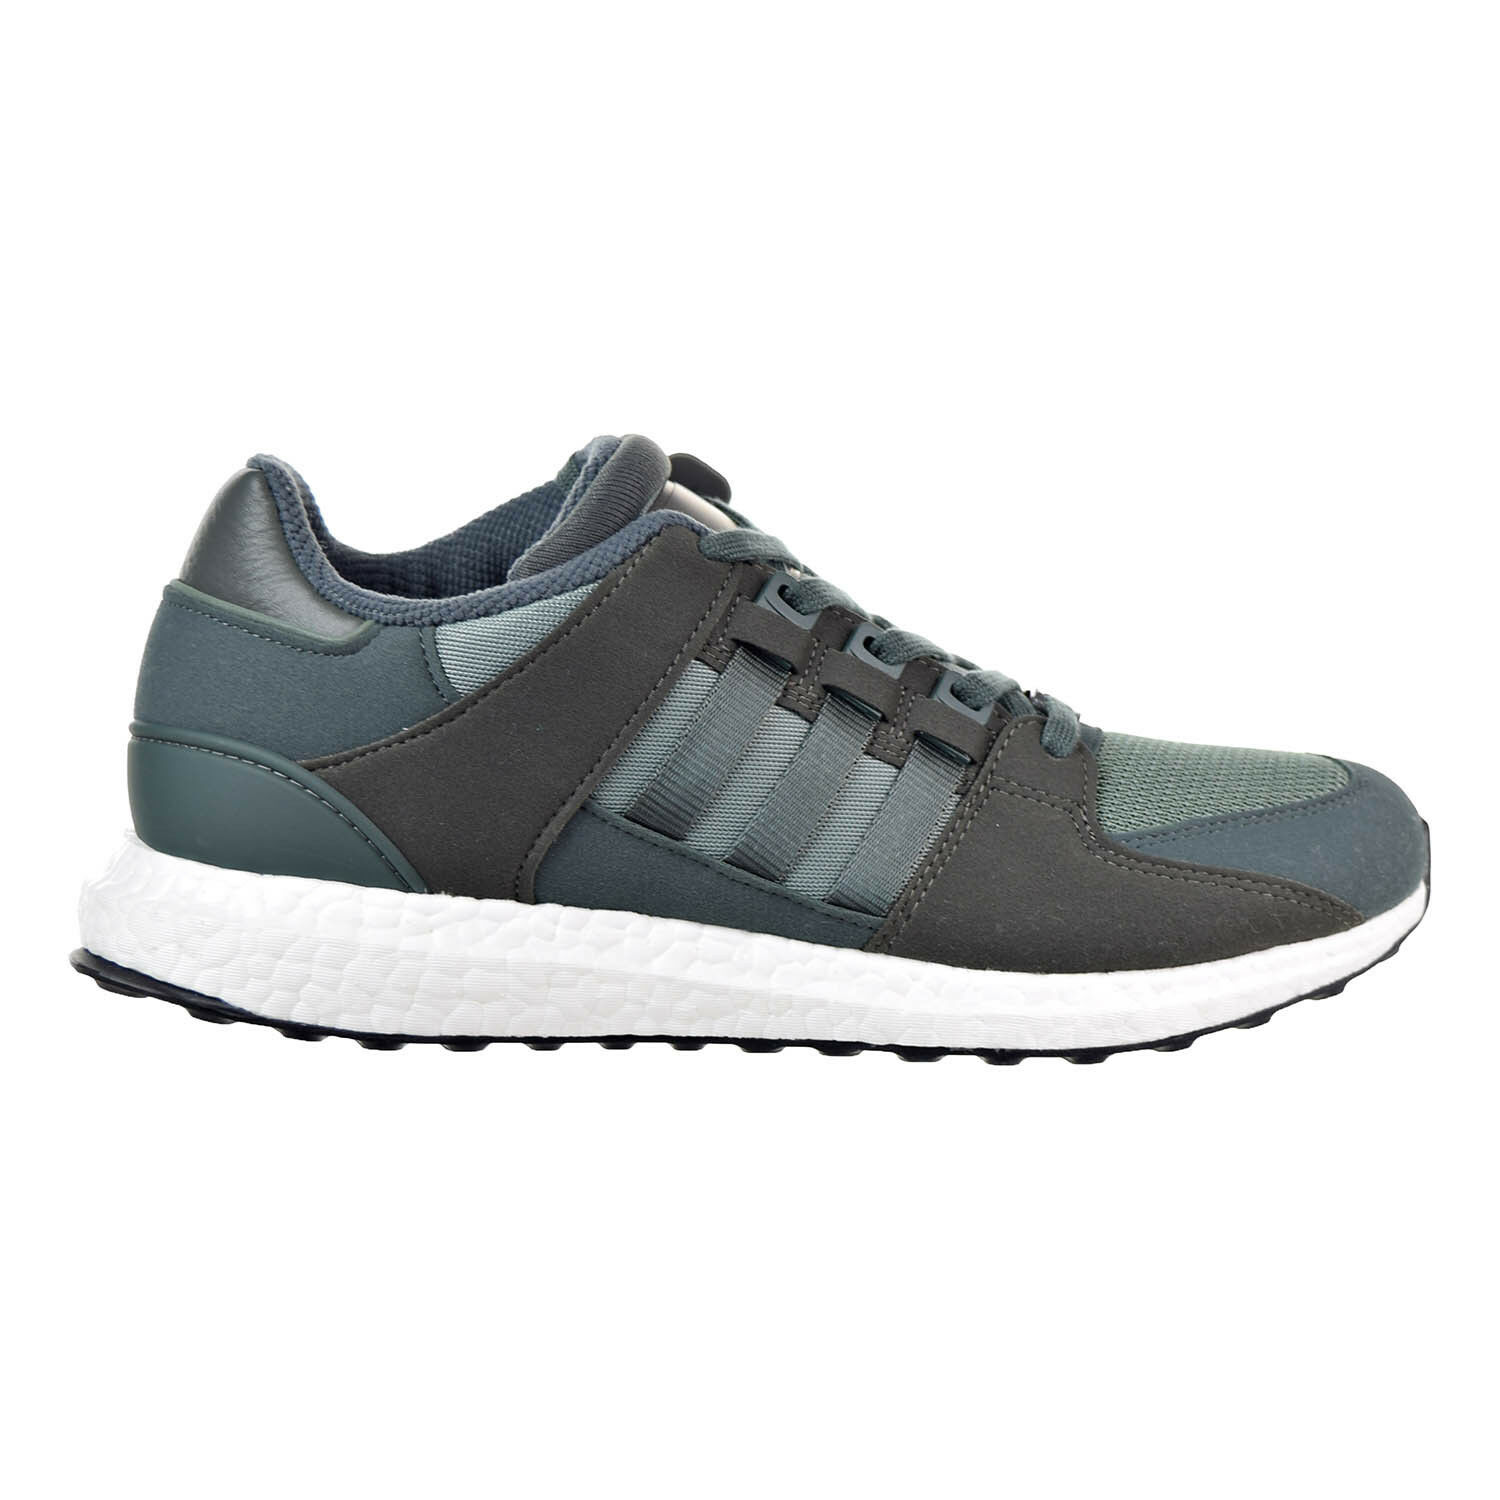 Adidas EQT Support Ultra Men's shoes Trace Green Utility Grey bb1240